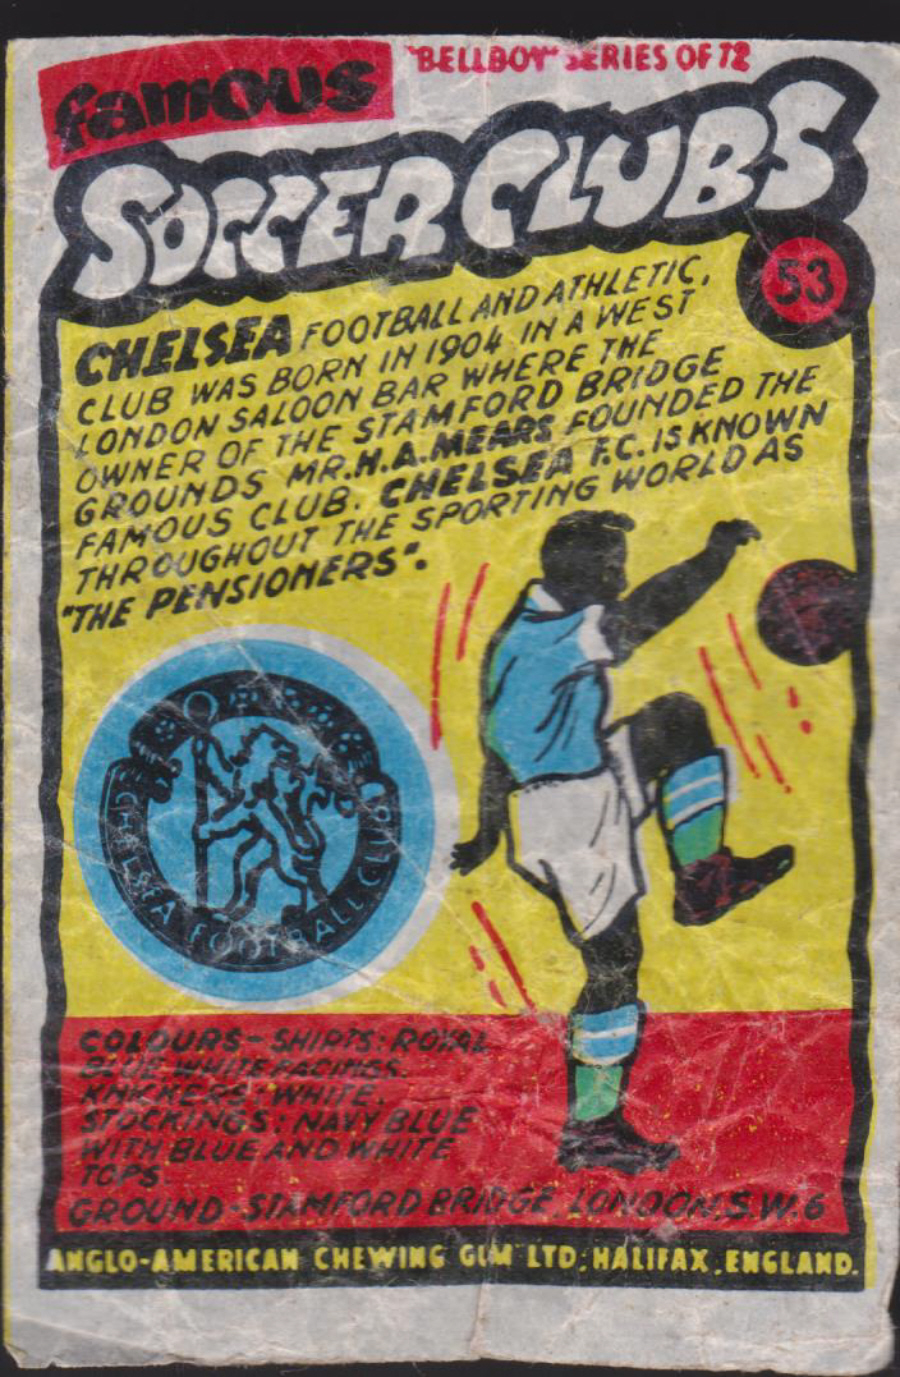 Anglo-American-Chewing-Gum-Wax-Wrapper-Famous-Soccer-Clubs-No-53 - Chelsea